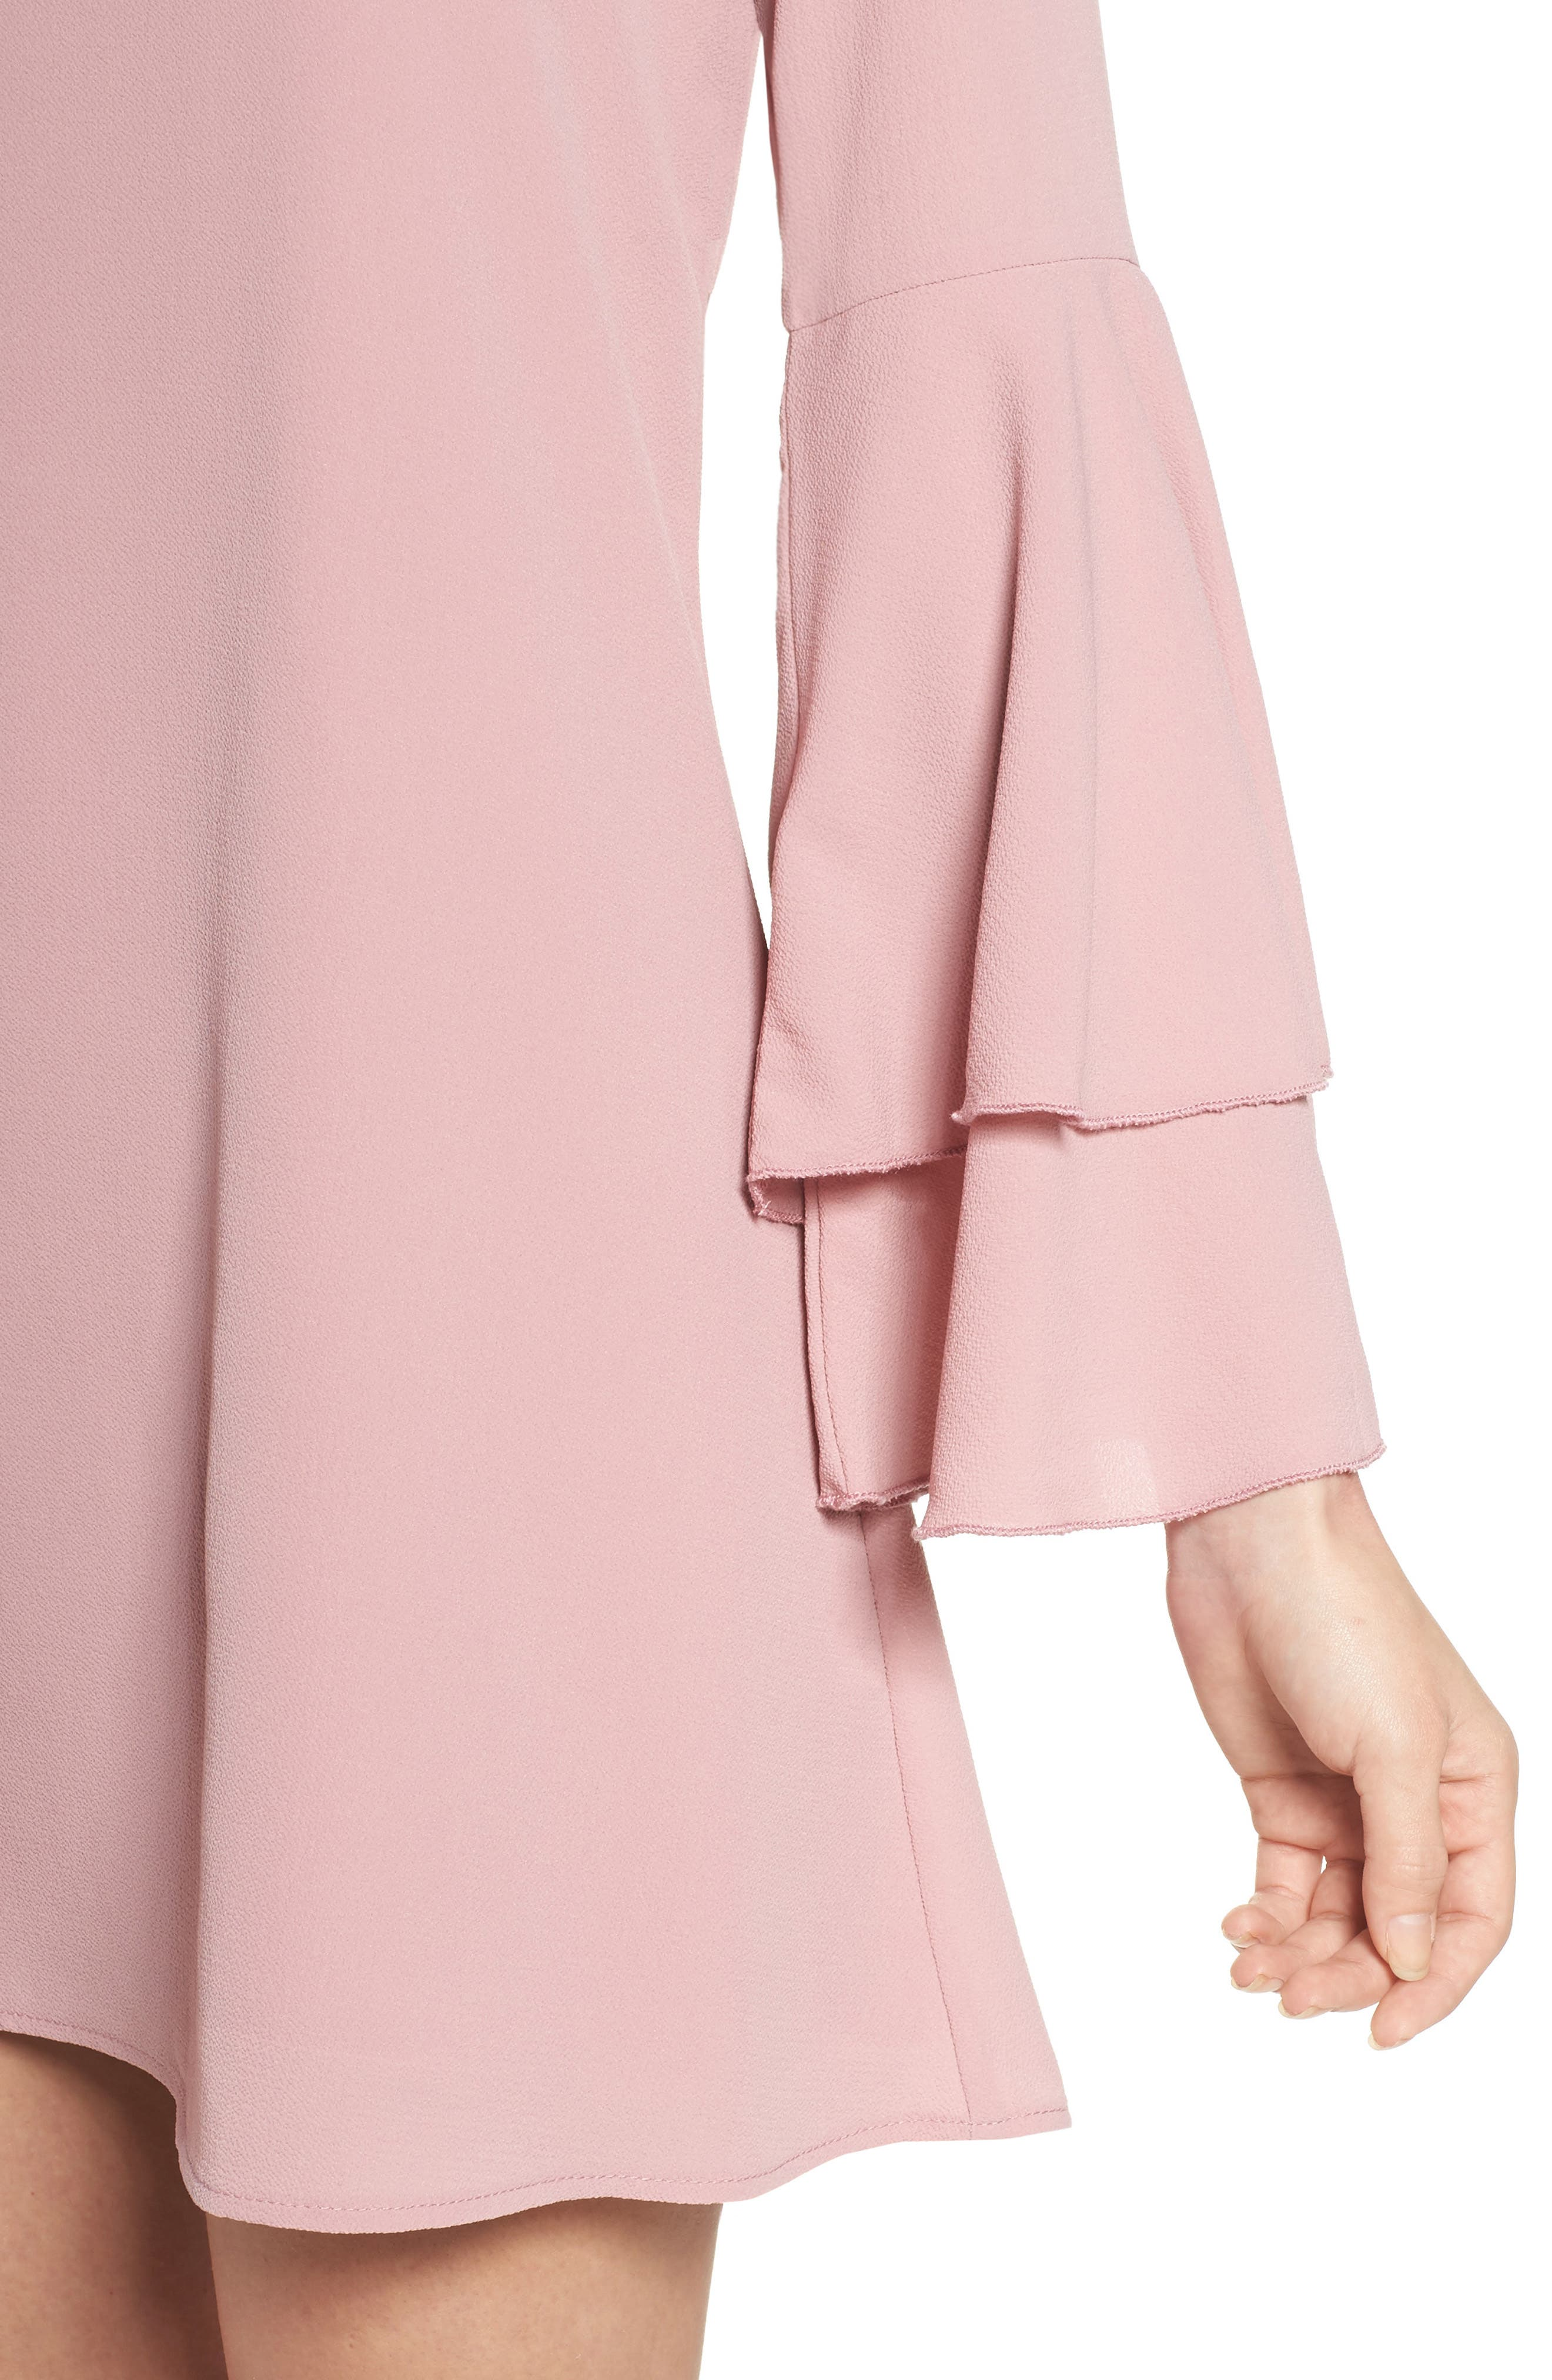 Bell Sleeve Dress,                             Alternate thumbnail 4, color,                             681